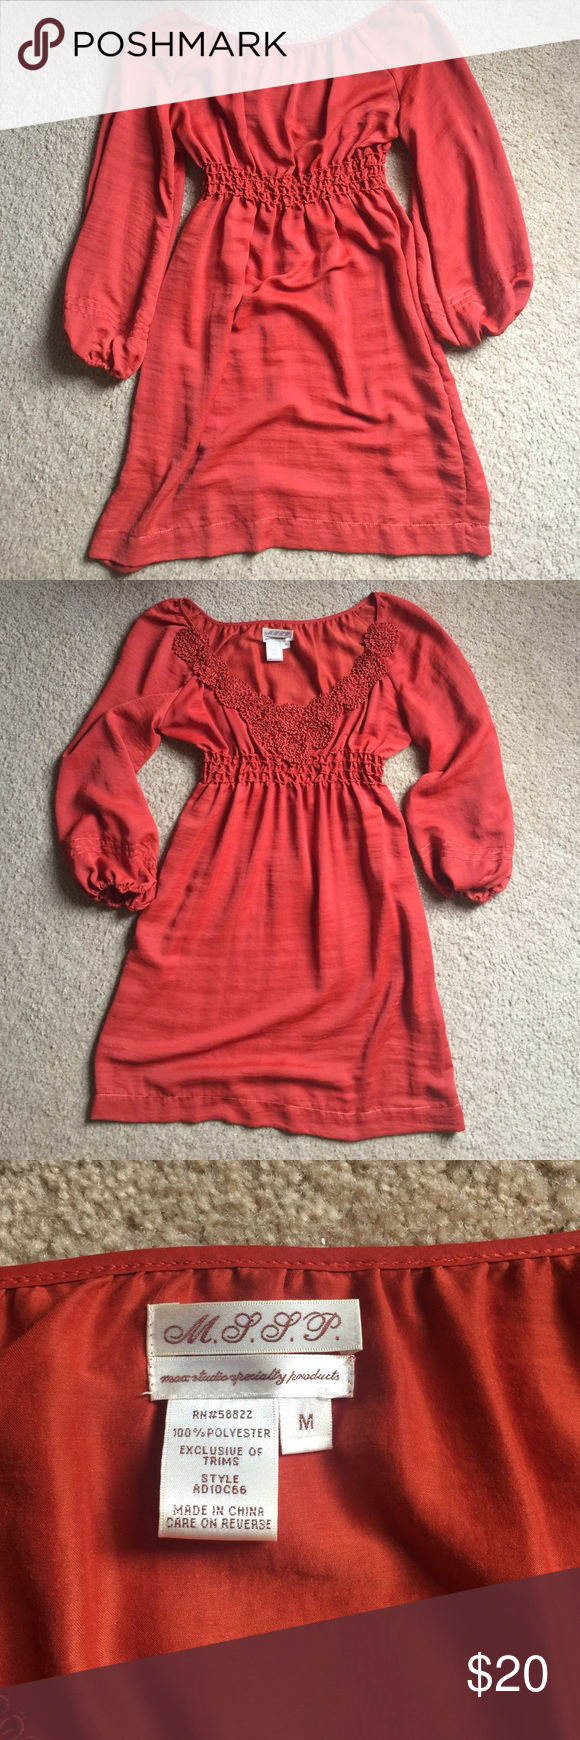 Max Studio Dress 🎉EUC 🎉••• 💥Make an OFFER or BUNDLE for a DISCOUNT 😃•••• M.S.S.P. Dress. It's a beautiful burnt orange color (pumpkin color), with a beautiful design and empire waist. Hits right around the knee. CAN NOT describe how BEAUTIFUL this dress really is 😍 Max Studio Dresses